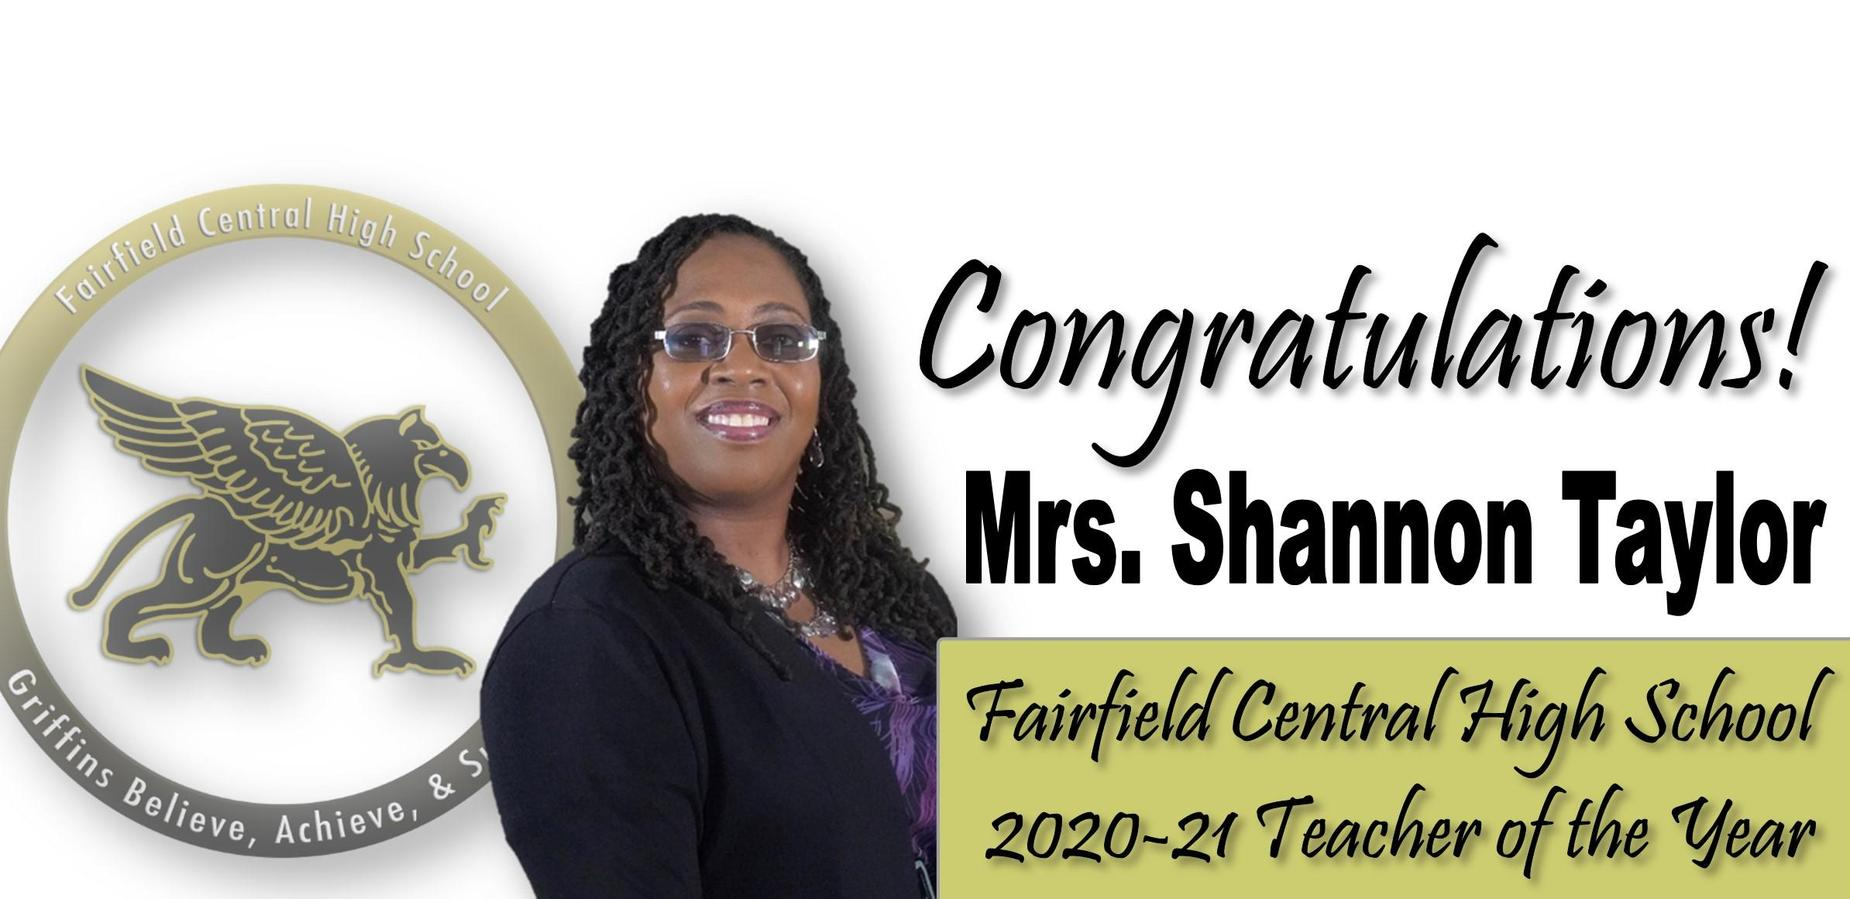 Congratulations Mrs. Shannon Taylor FCHS 2020-21 Teacher of the Year